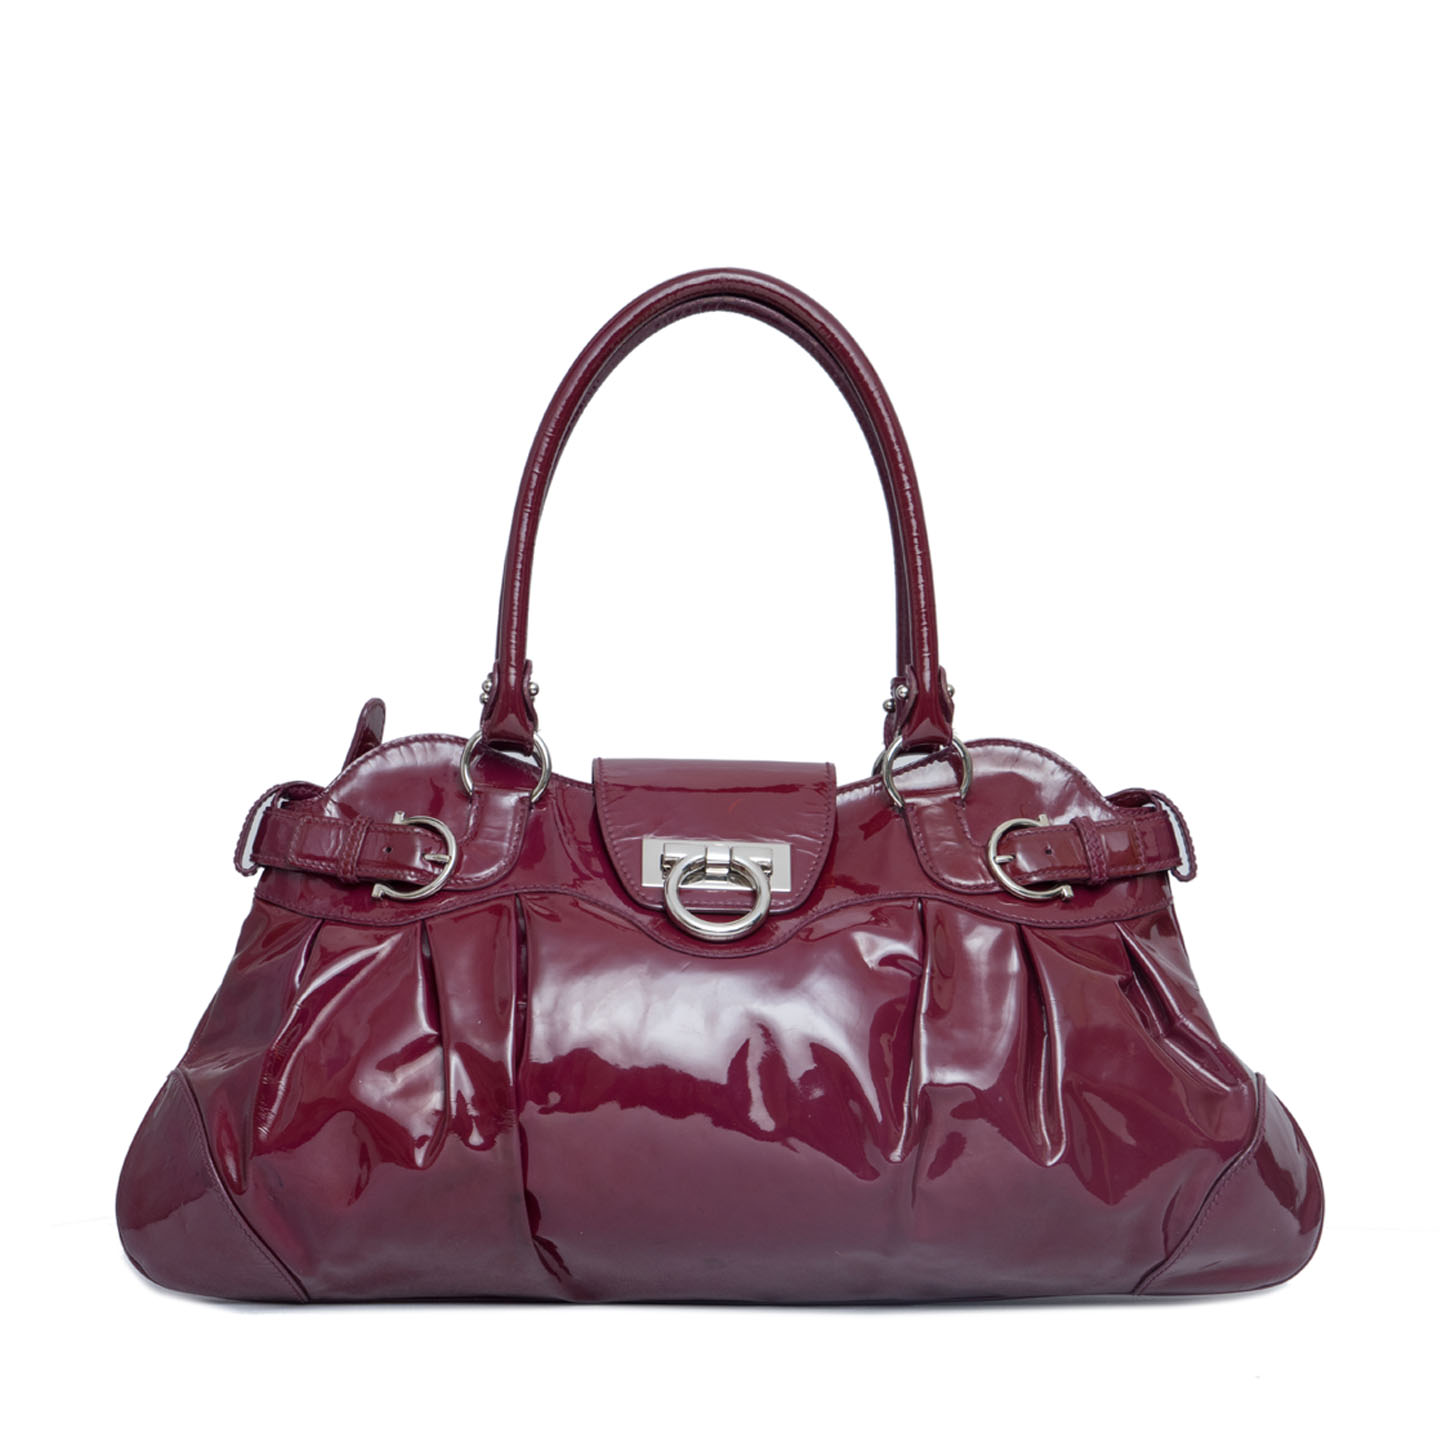 Salvatore Ferragamo Patent Leather Marisa Shoulder Bag 01